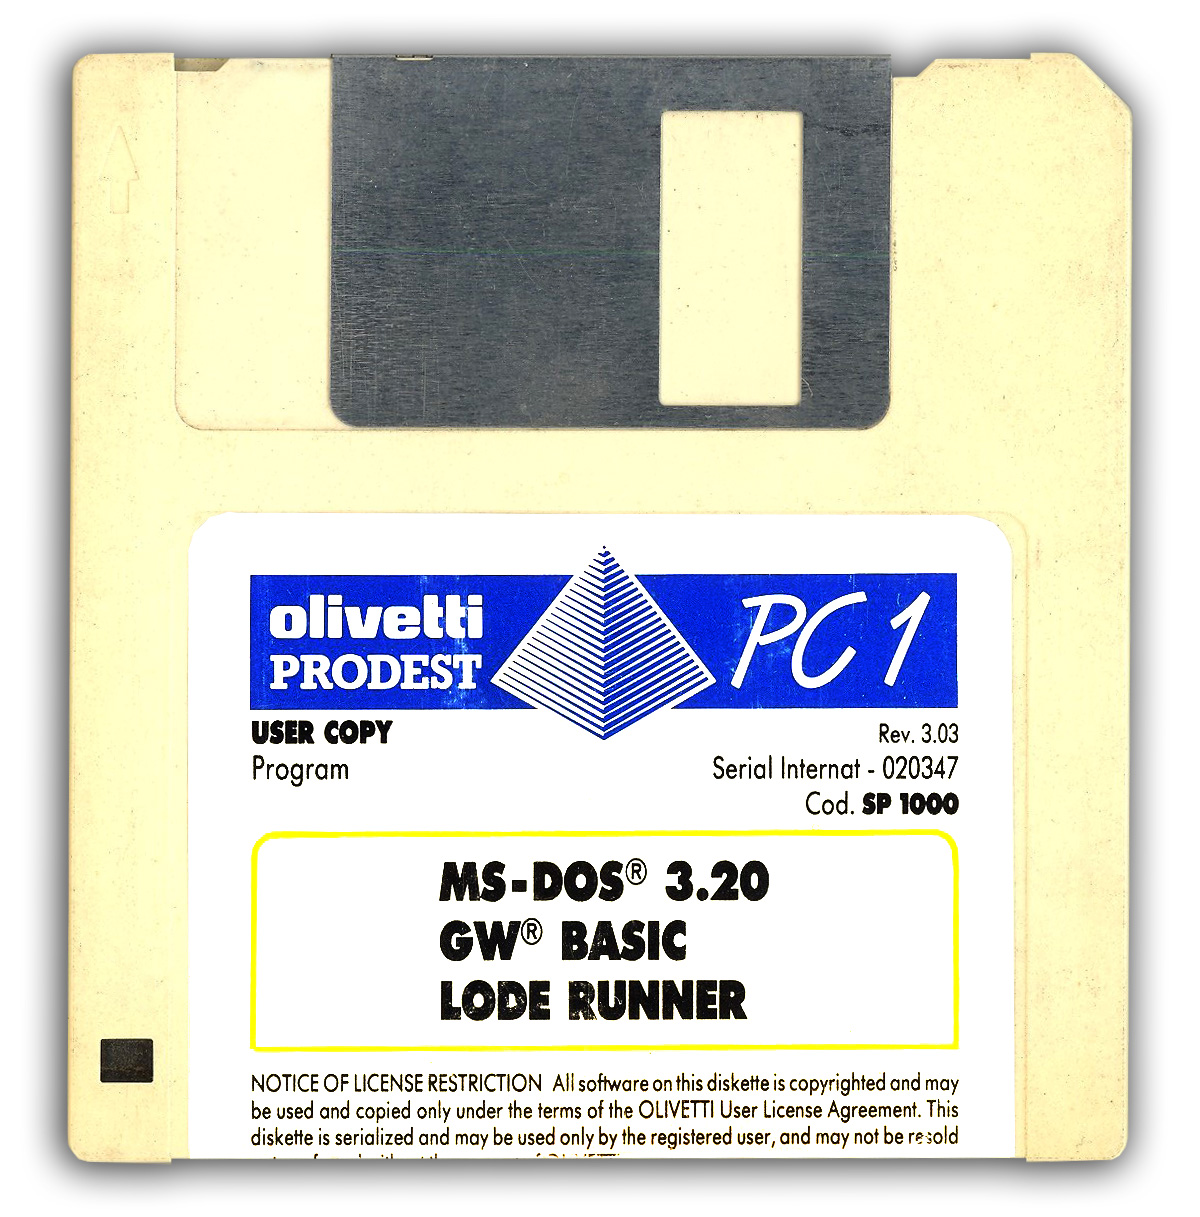 Boot disk (English) for Olivetti Prodest PC1